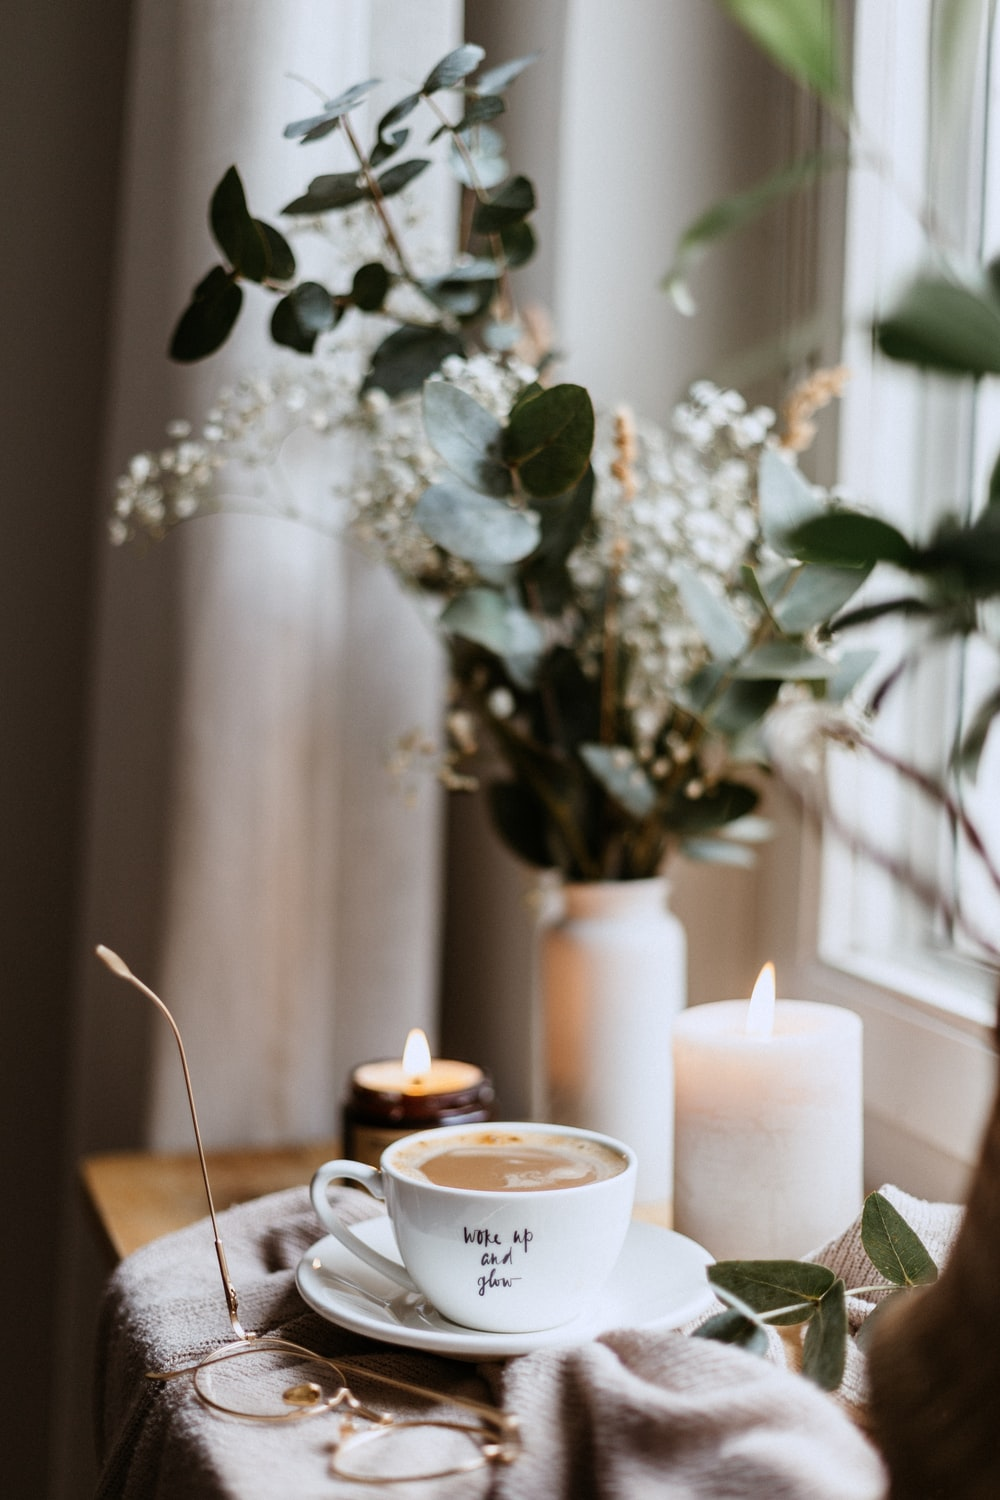 white ceramic cup and saucer inside room